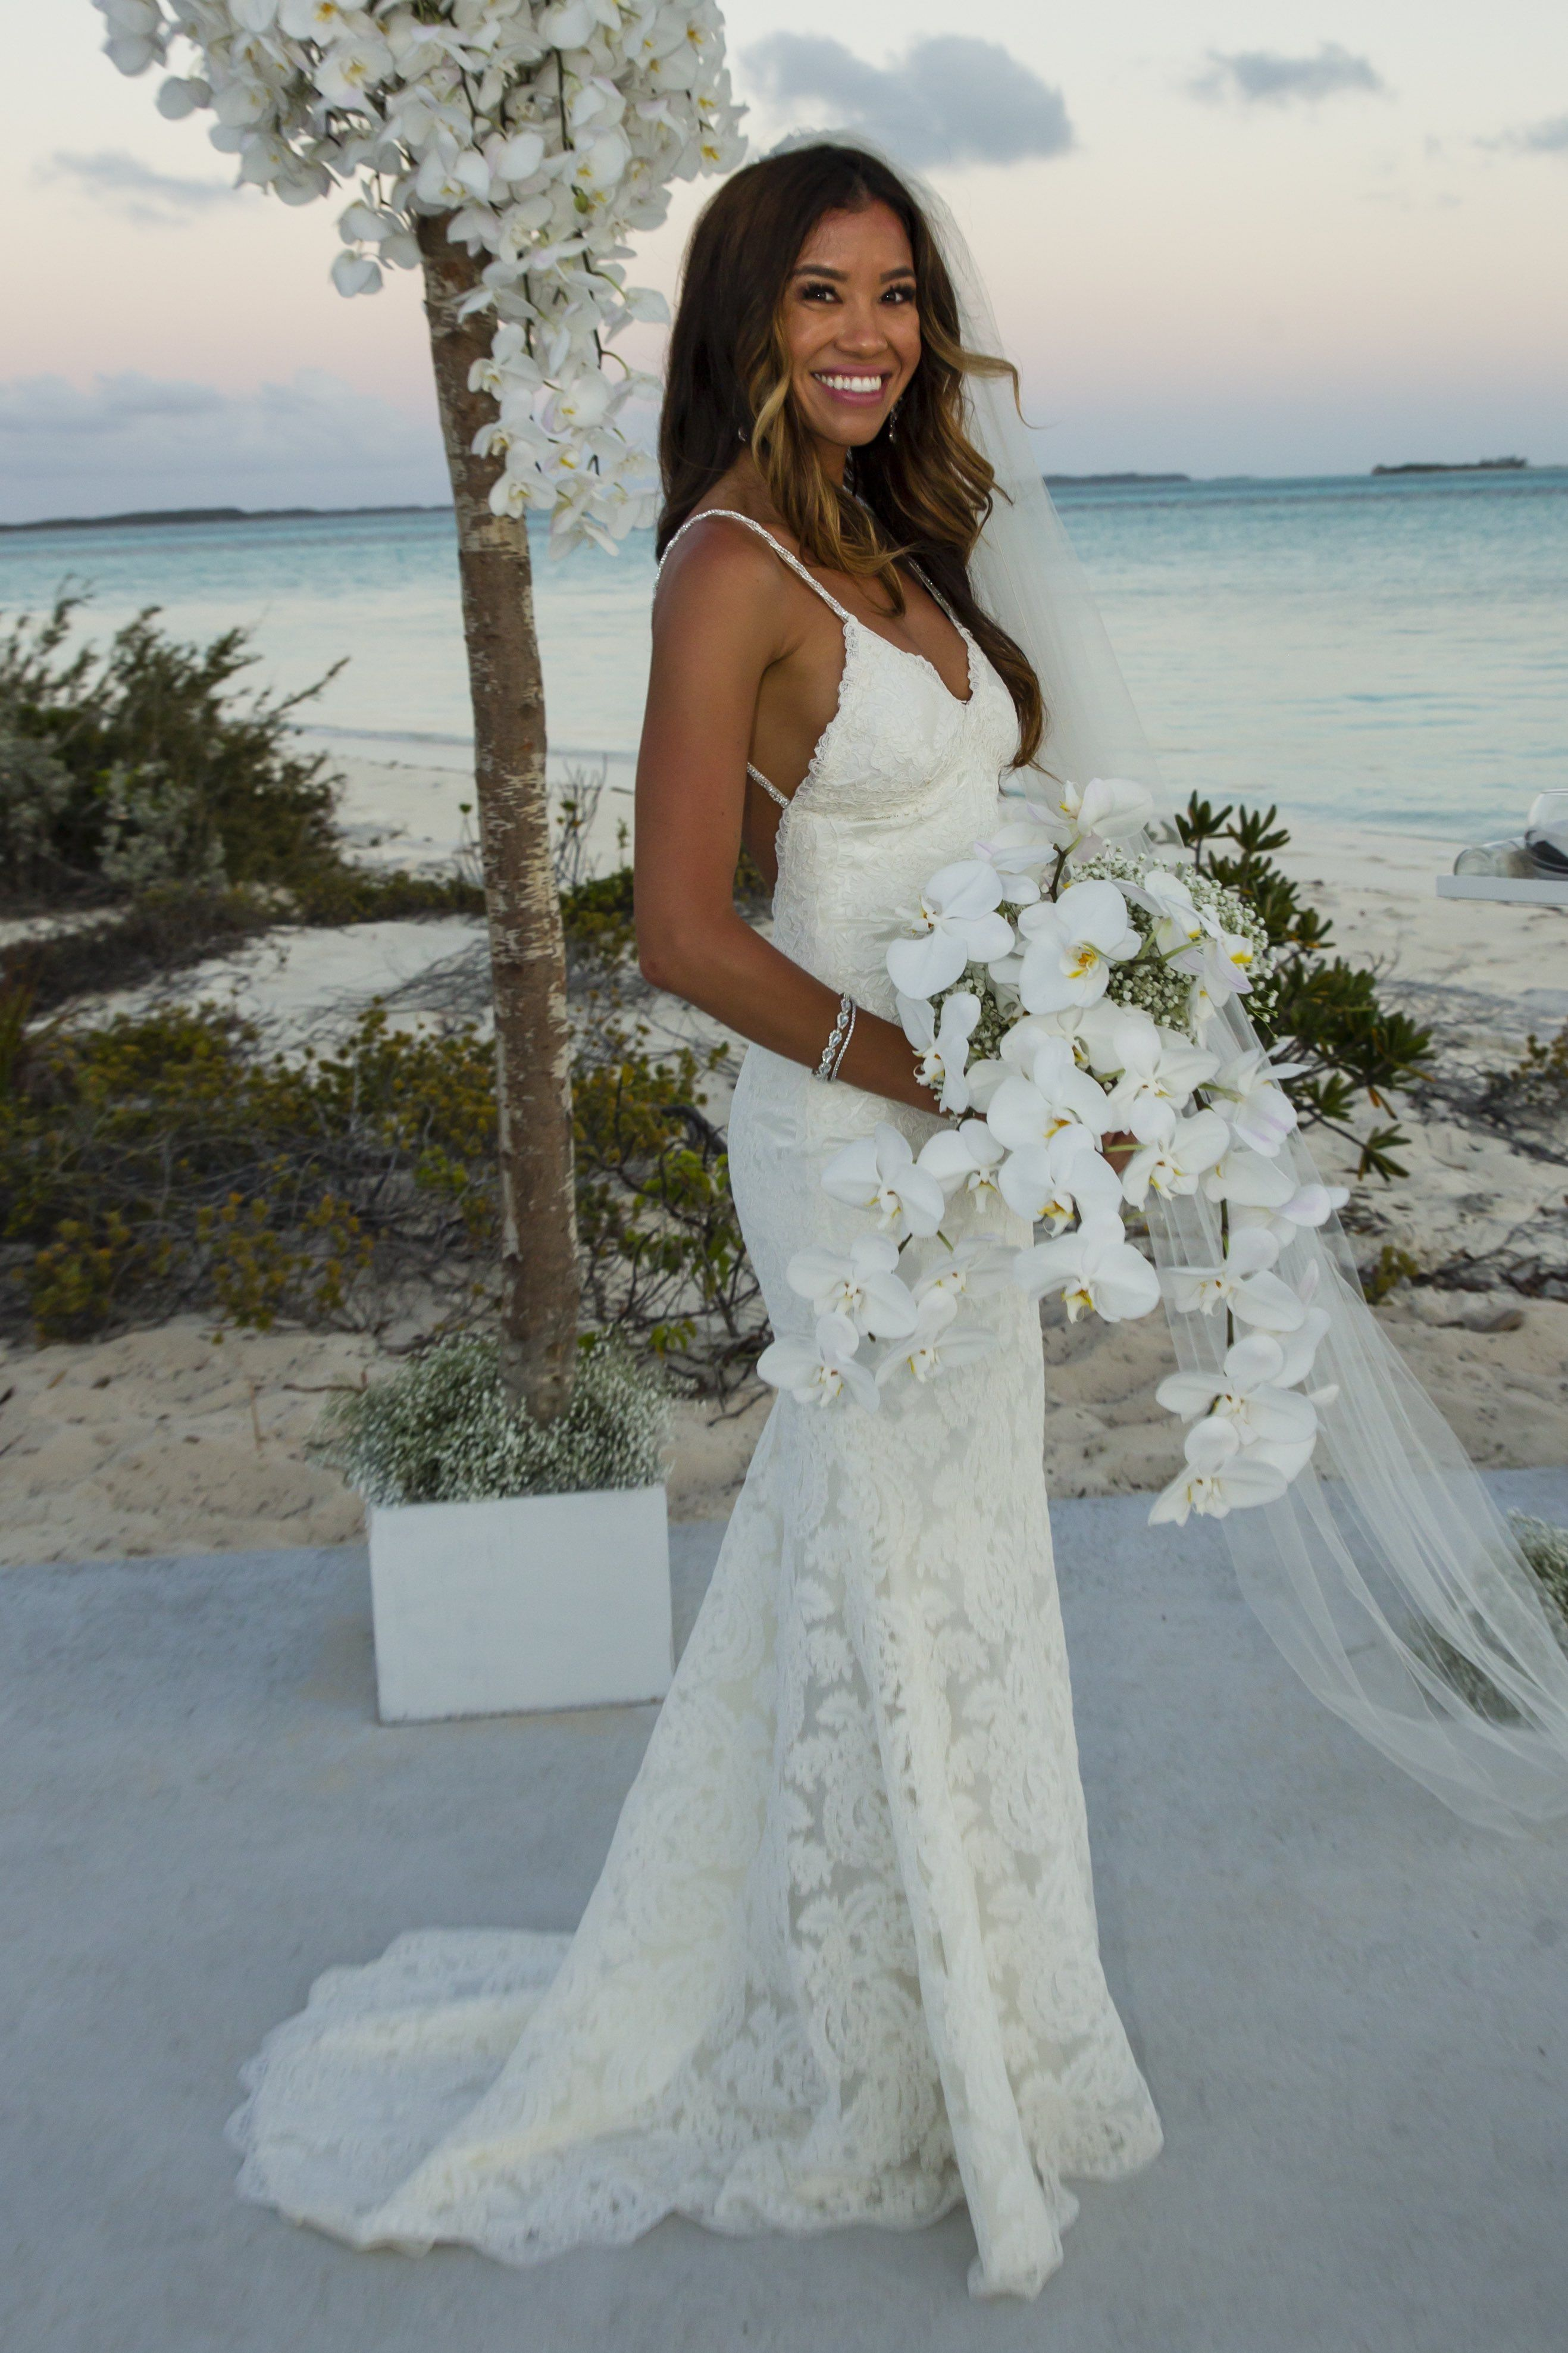 Fashion style Hawaiian White wedding dresses pictures for girls